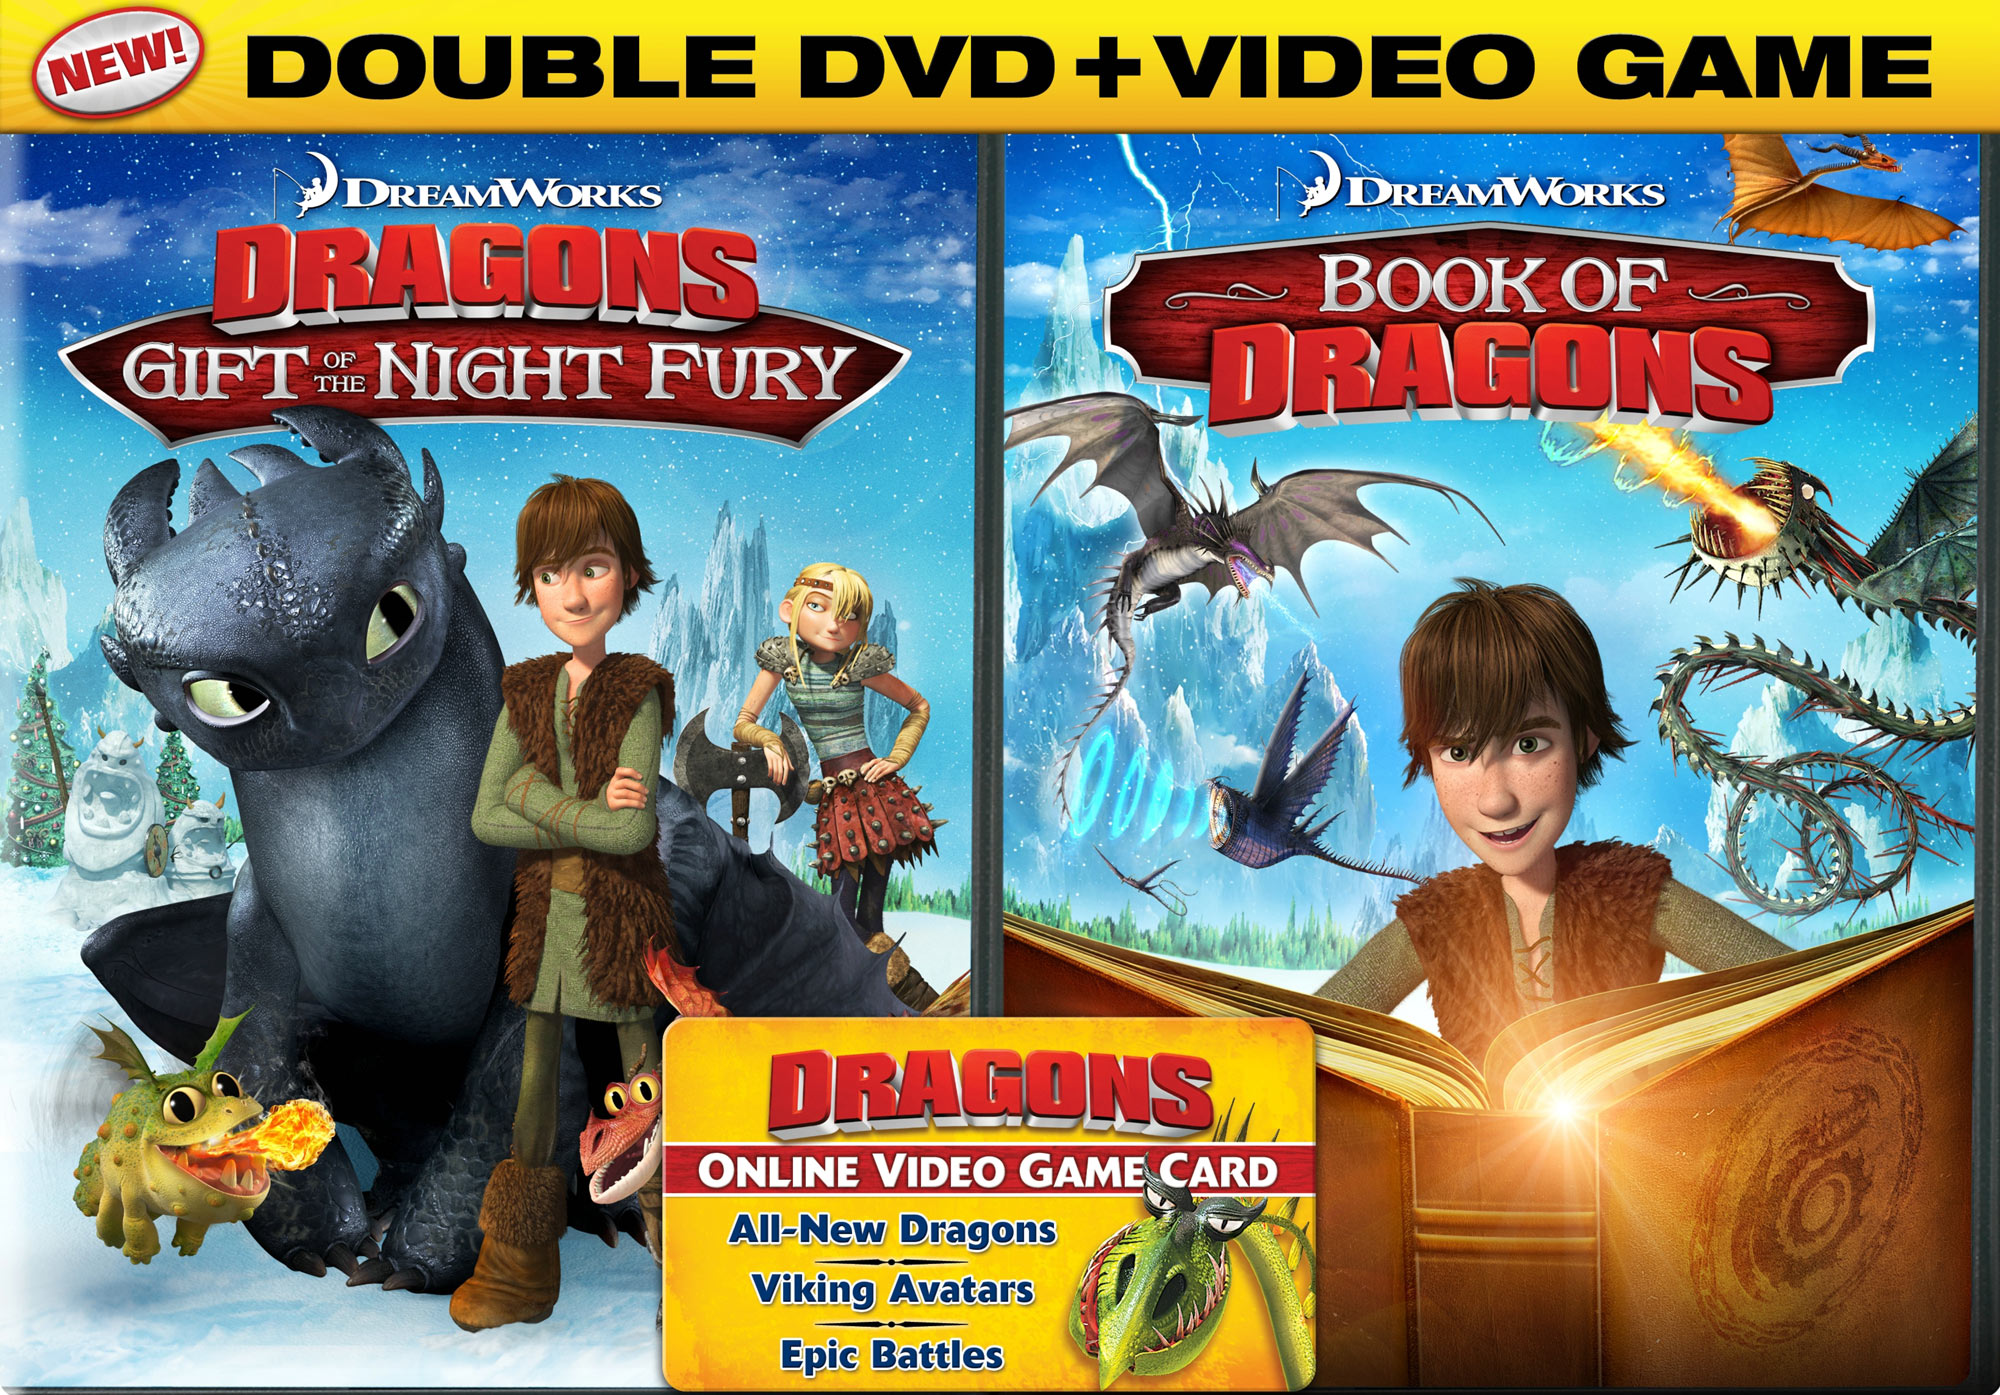 Dreamworks Dragons Drawings Dreamworks Dragons Double Dvd